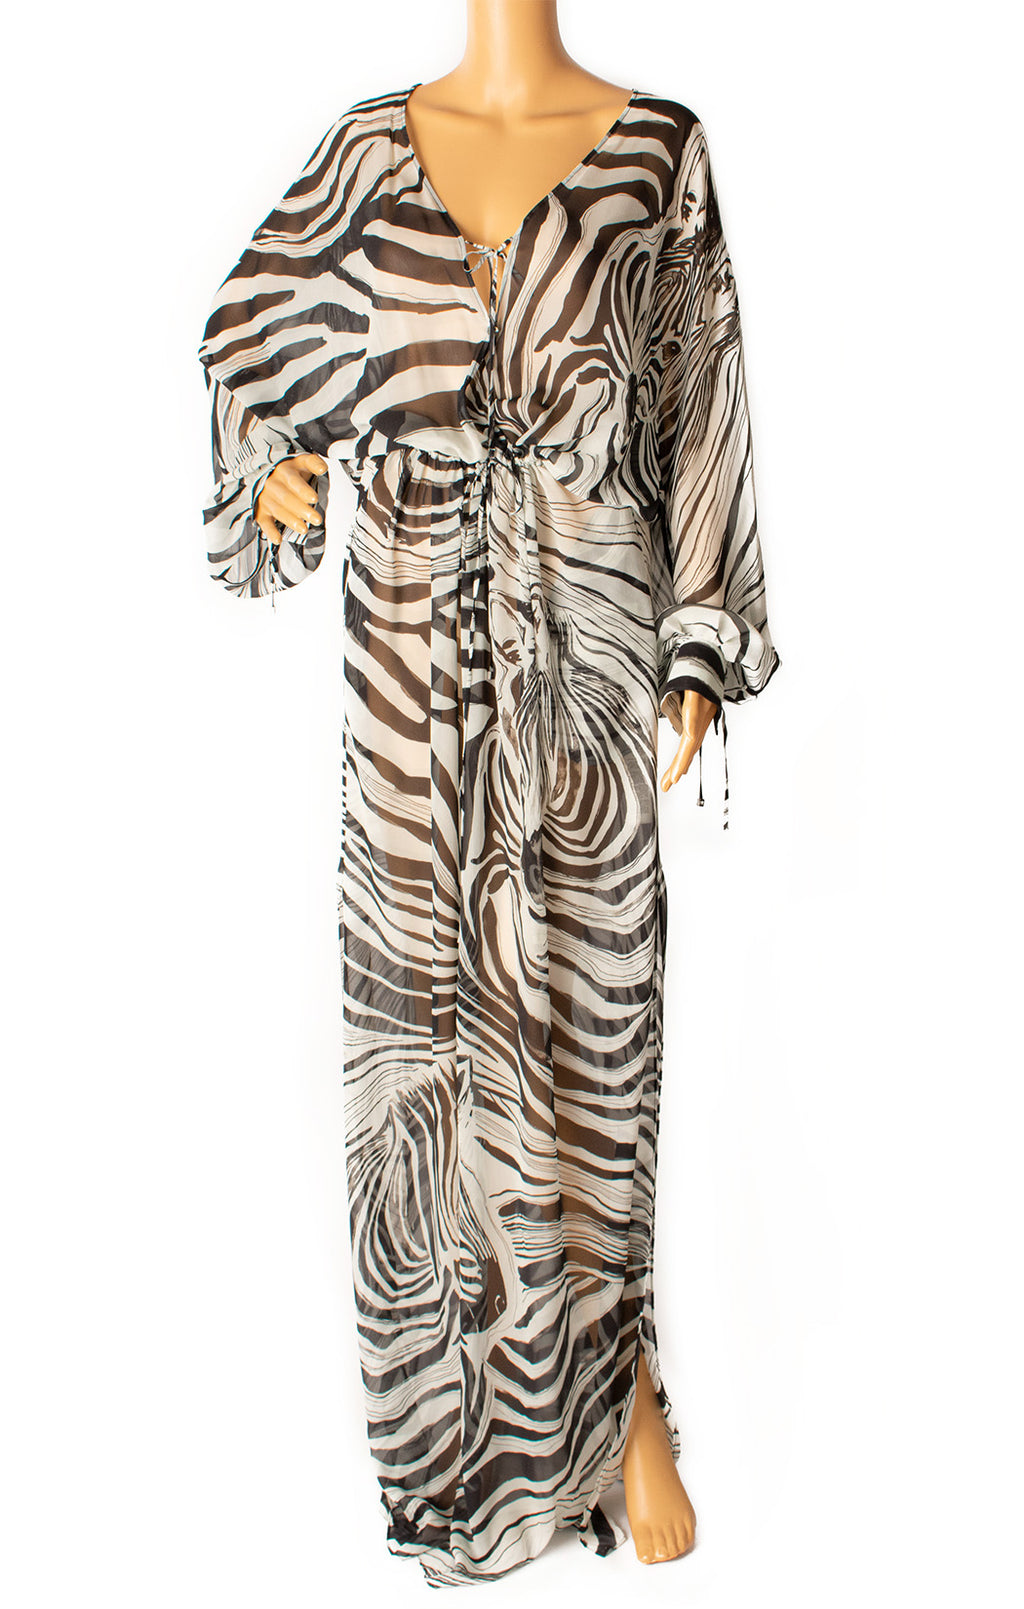 Front view of ROBERTO CAVALLI  Dress/coverup Size: IT 42 (comparable to US 6)